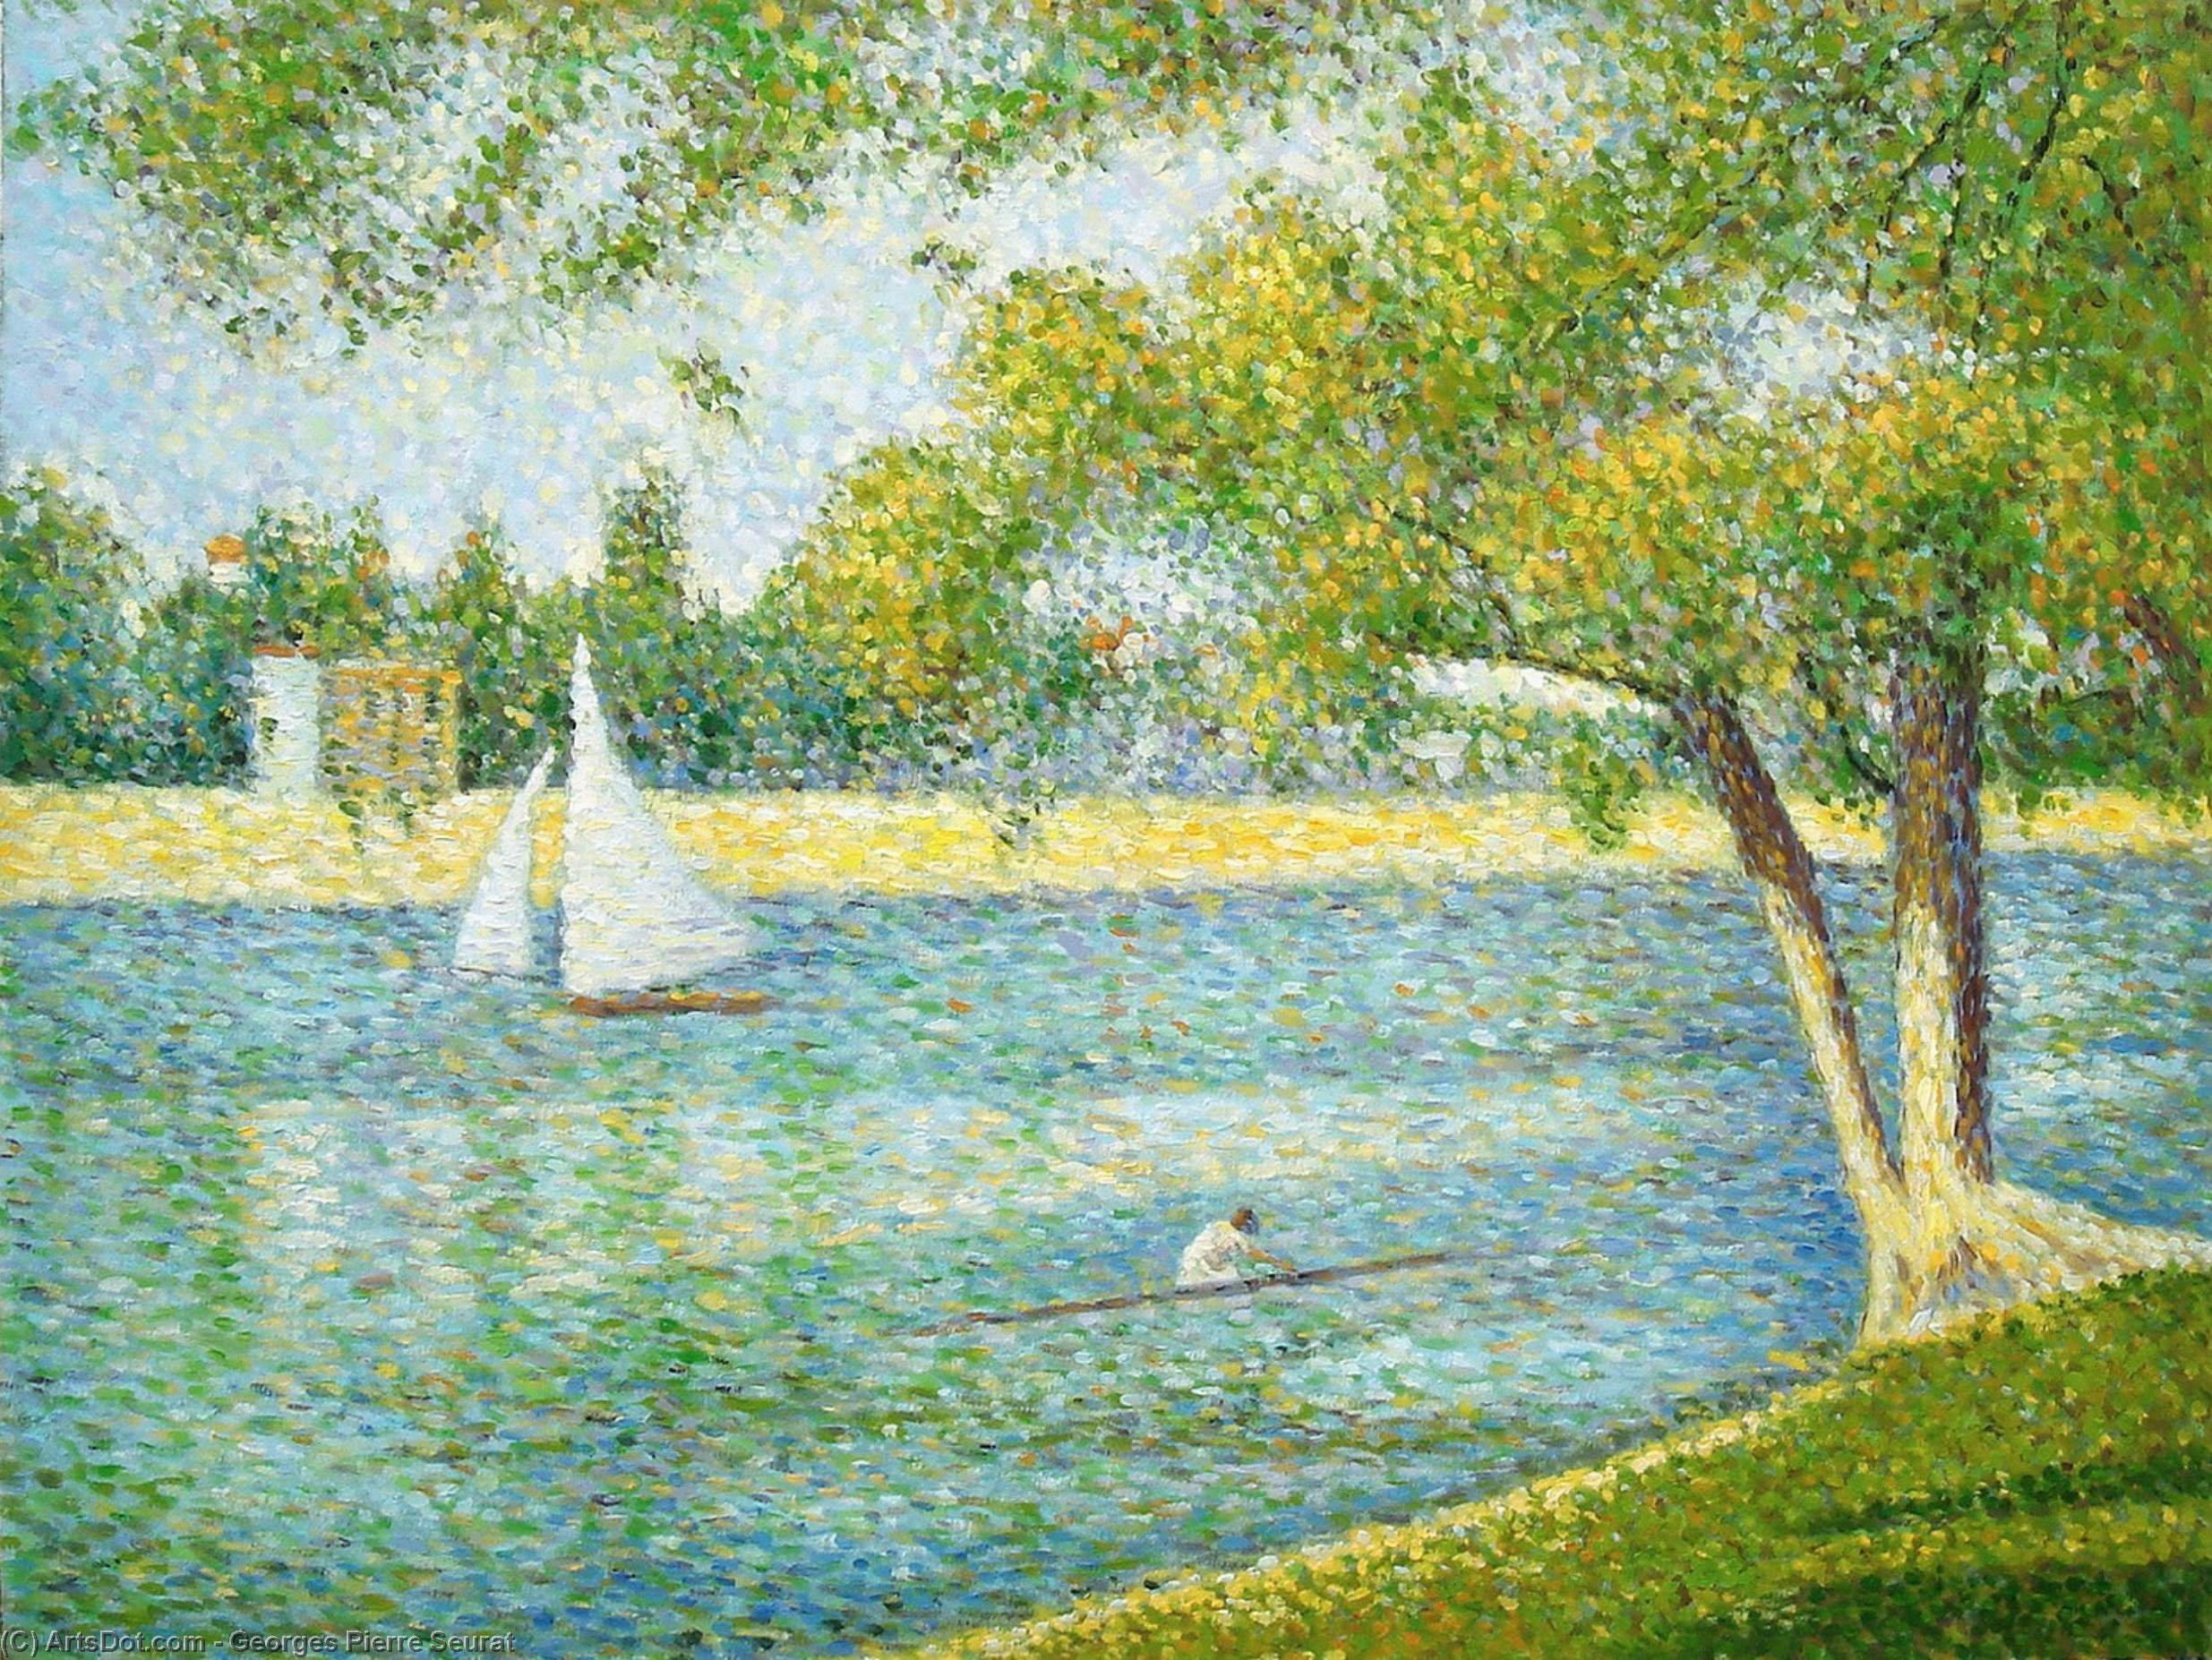 george seurat We have 48 georges seurat prints and posters, including sunday afternoon on the island of la grande jatte, sunday afternoon on the island of la grande jatte, c1886, and more.